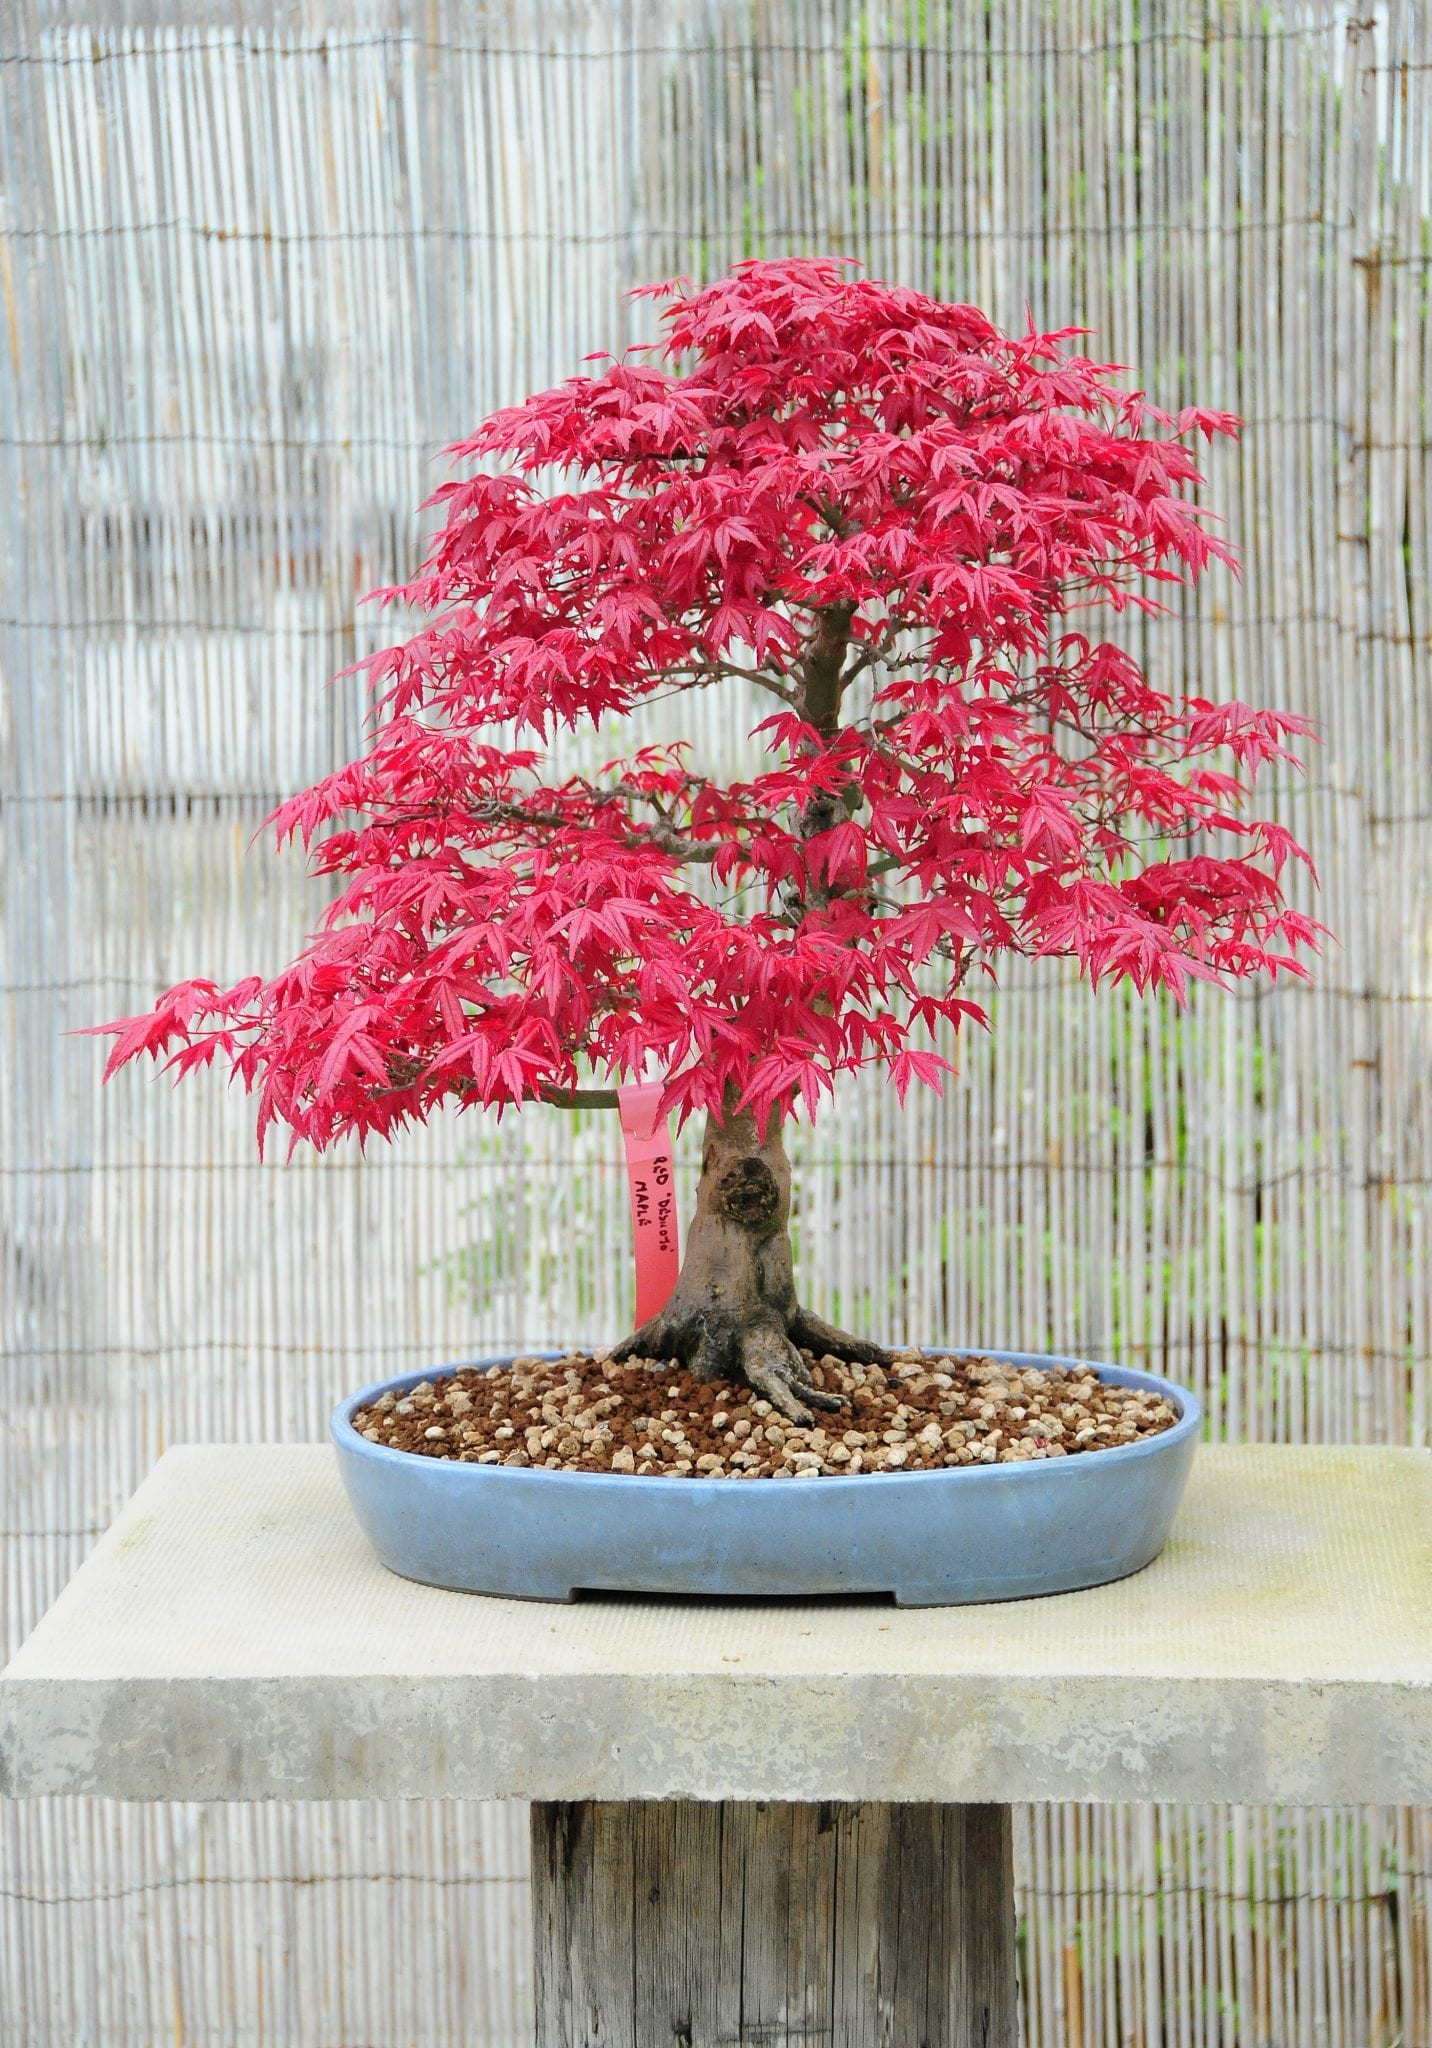 Japanese Maple Bonsai Tree Care Guide Acer Palmatum Bonsai Tree Gardener